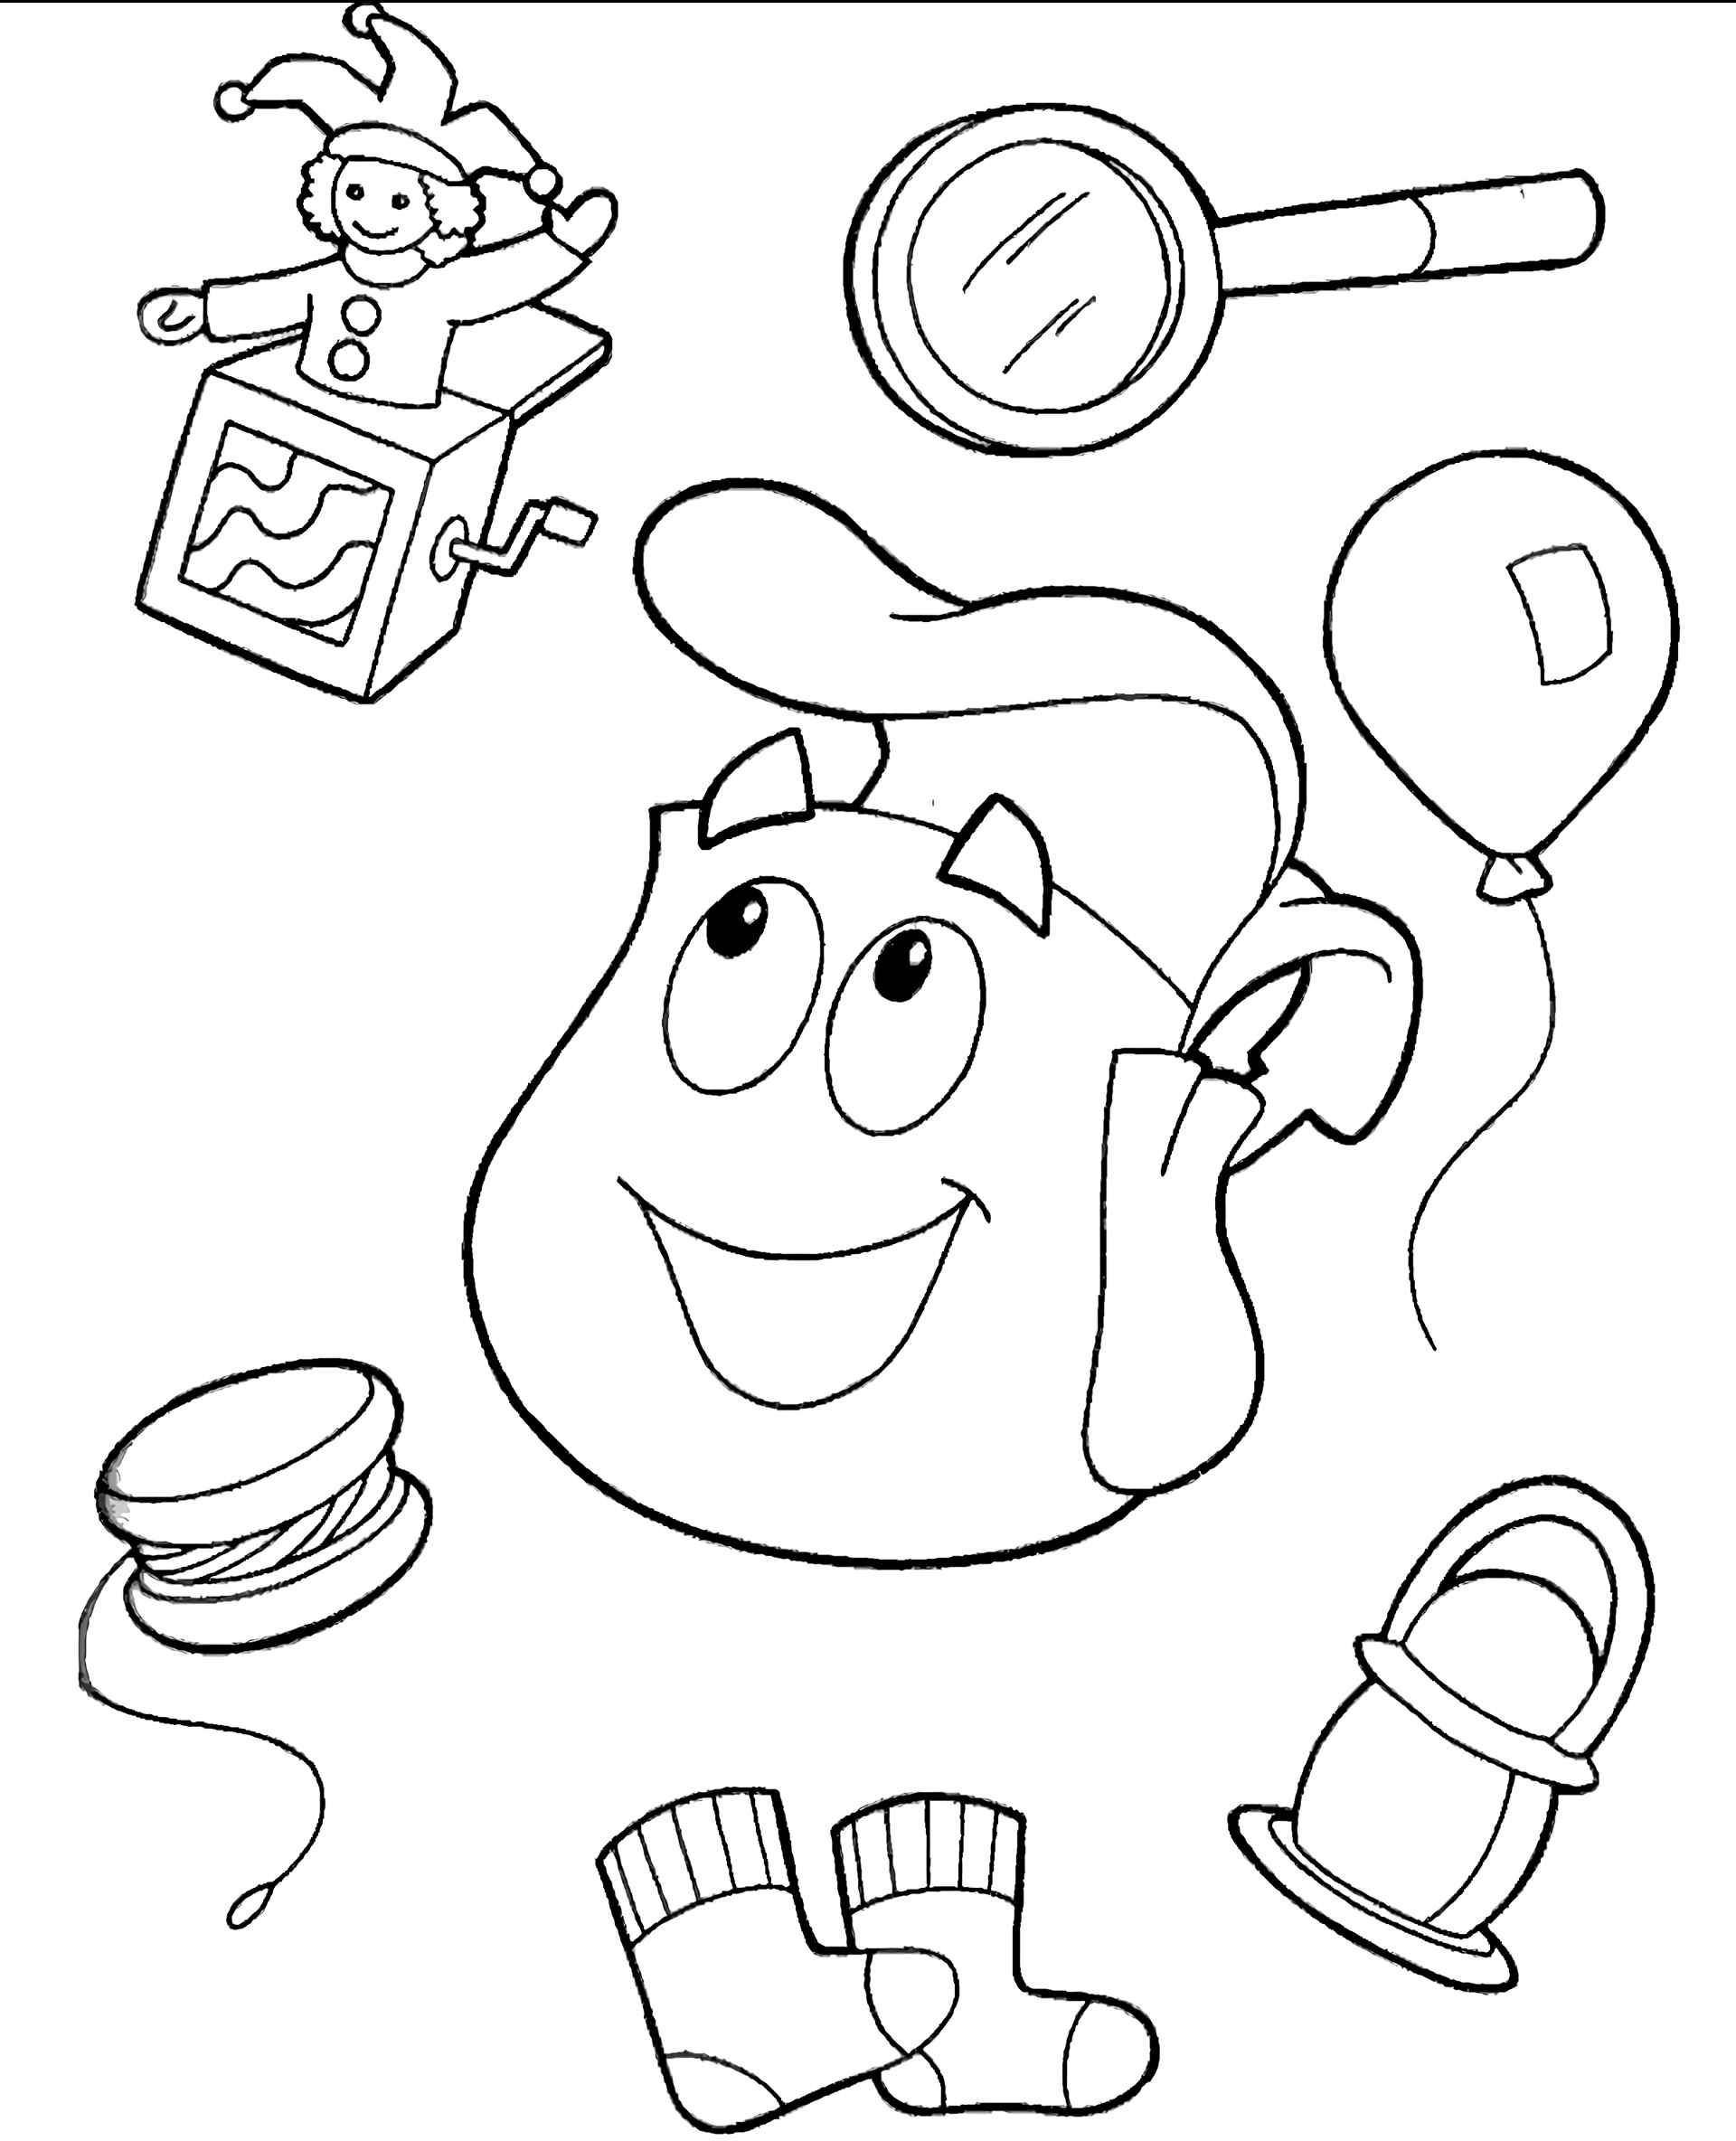 Dora's Backpack Coloring Page